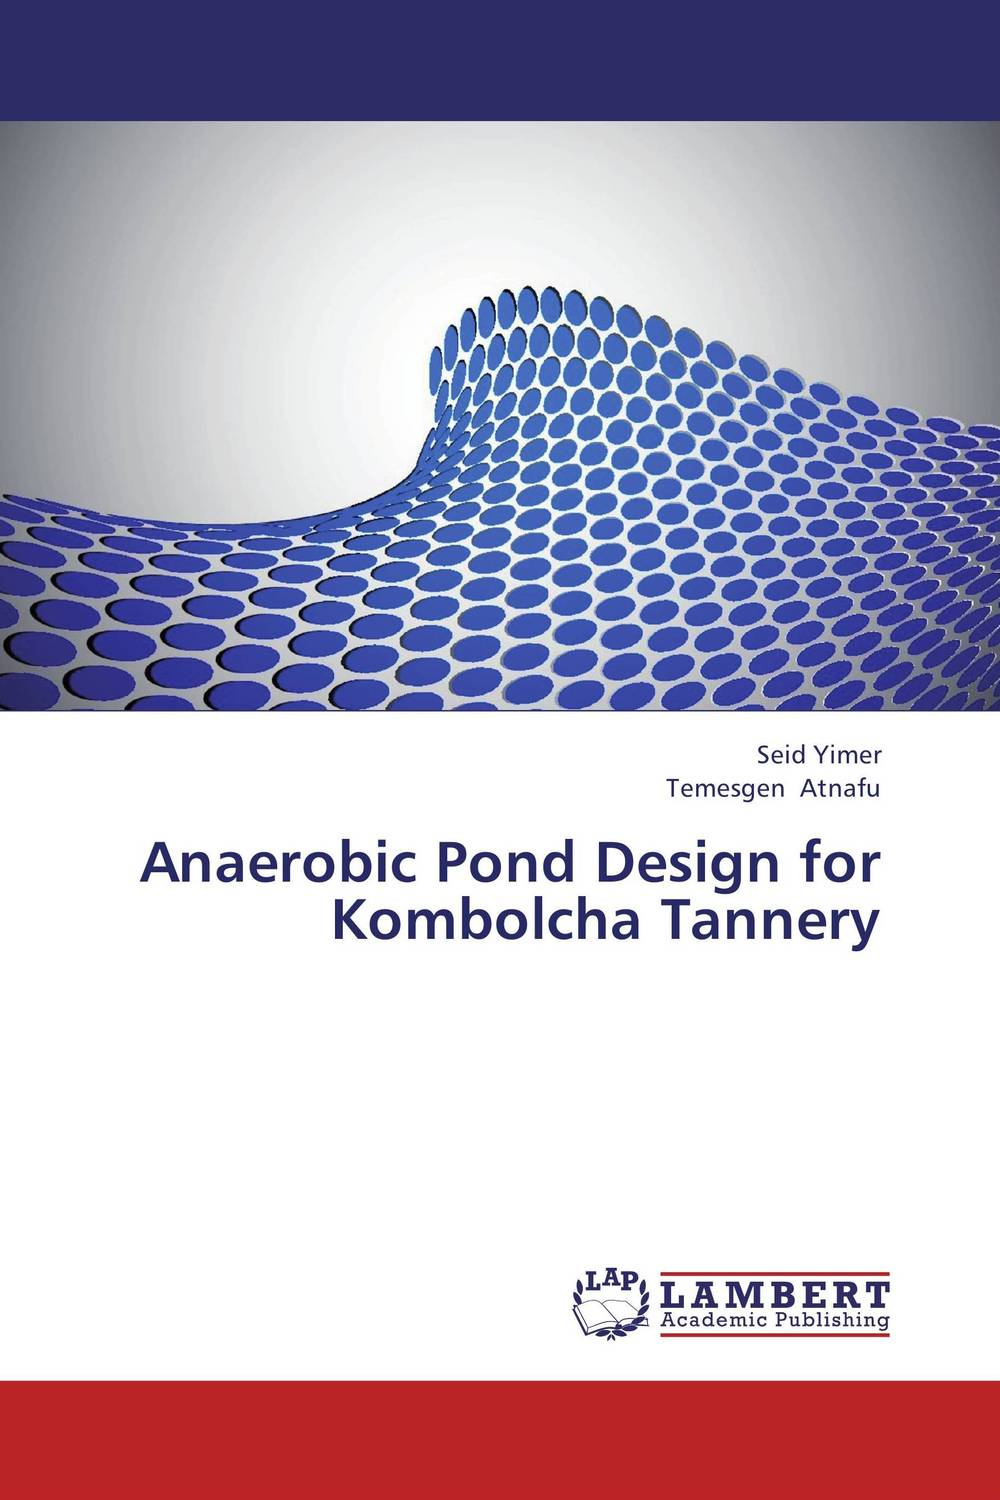 Anaerobic Pond Design for Kombolcha Tannery